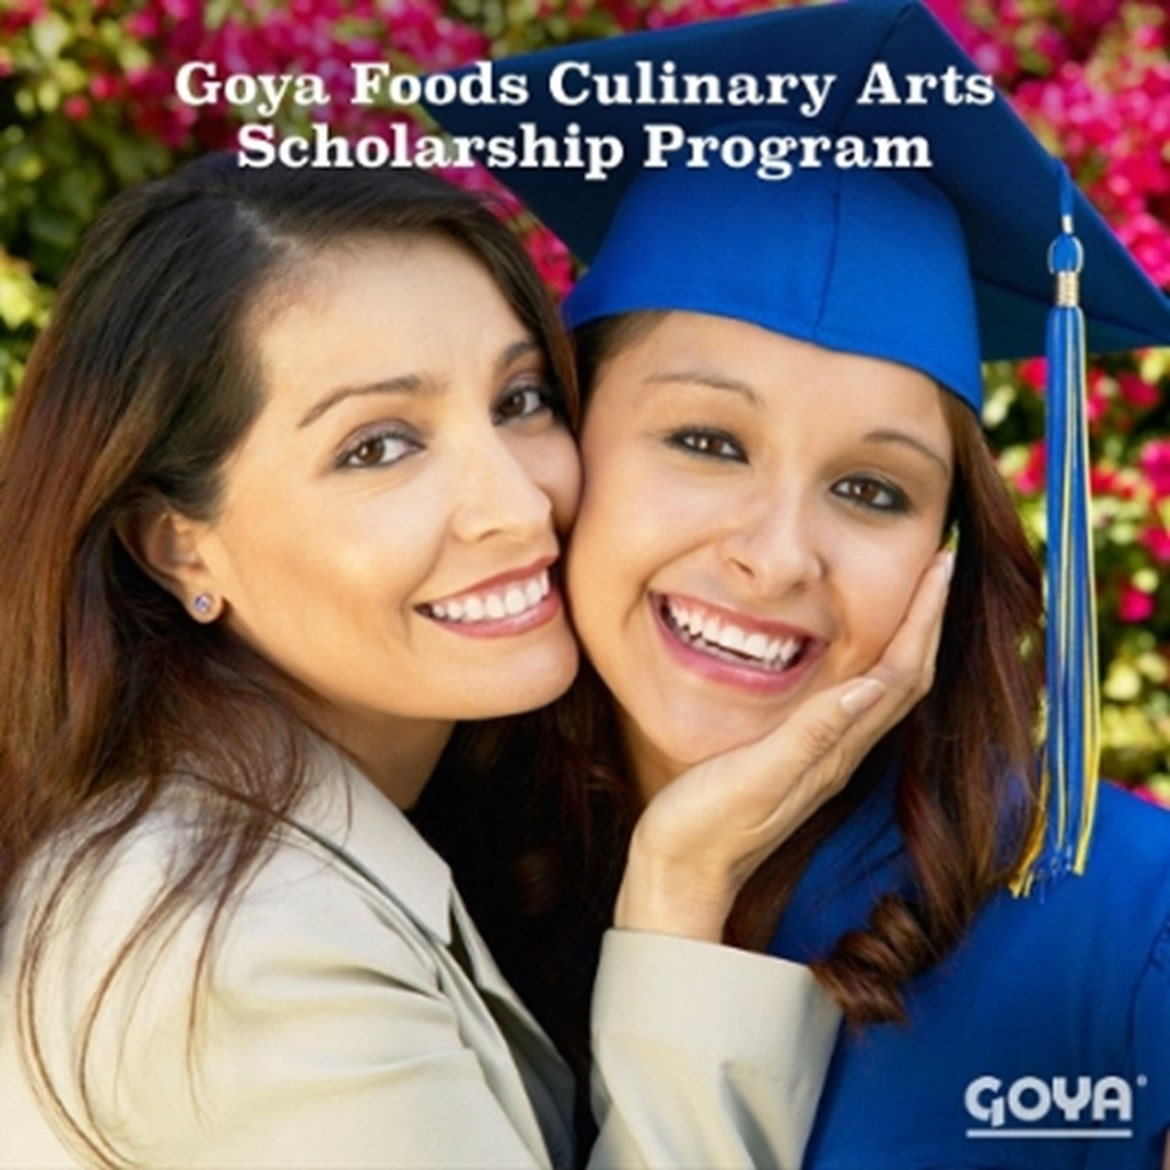 GOYA FOODS ANNOUNCES NEW NATIONWIDE CULINARY ARTS & FOOD SCIENCES SCHOLARSHIP